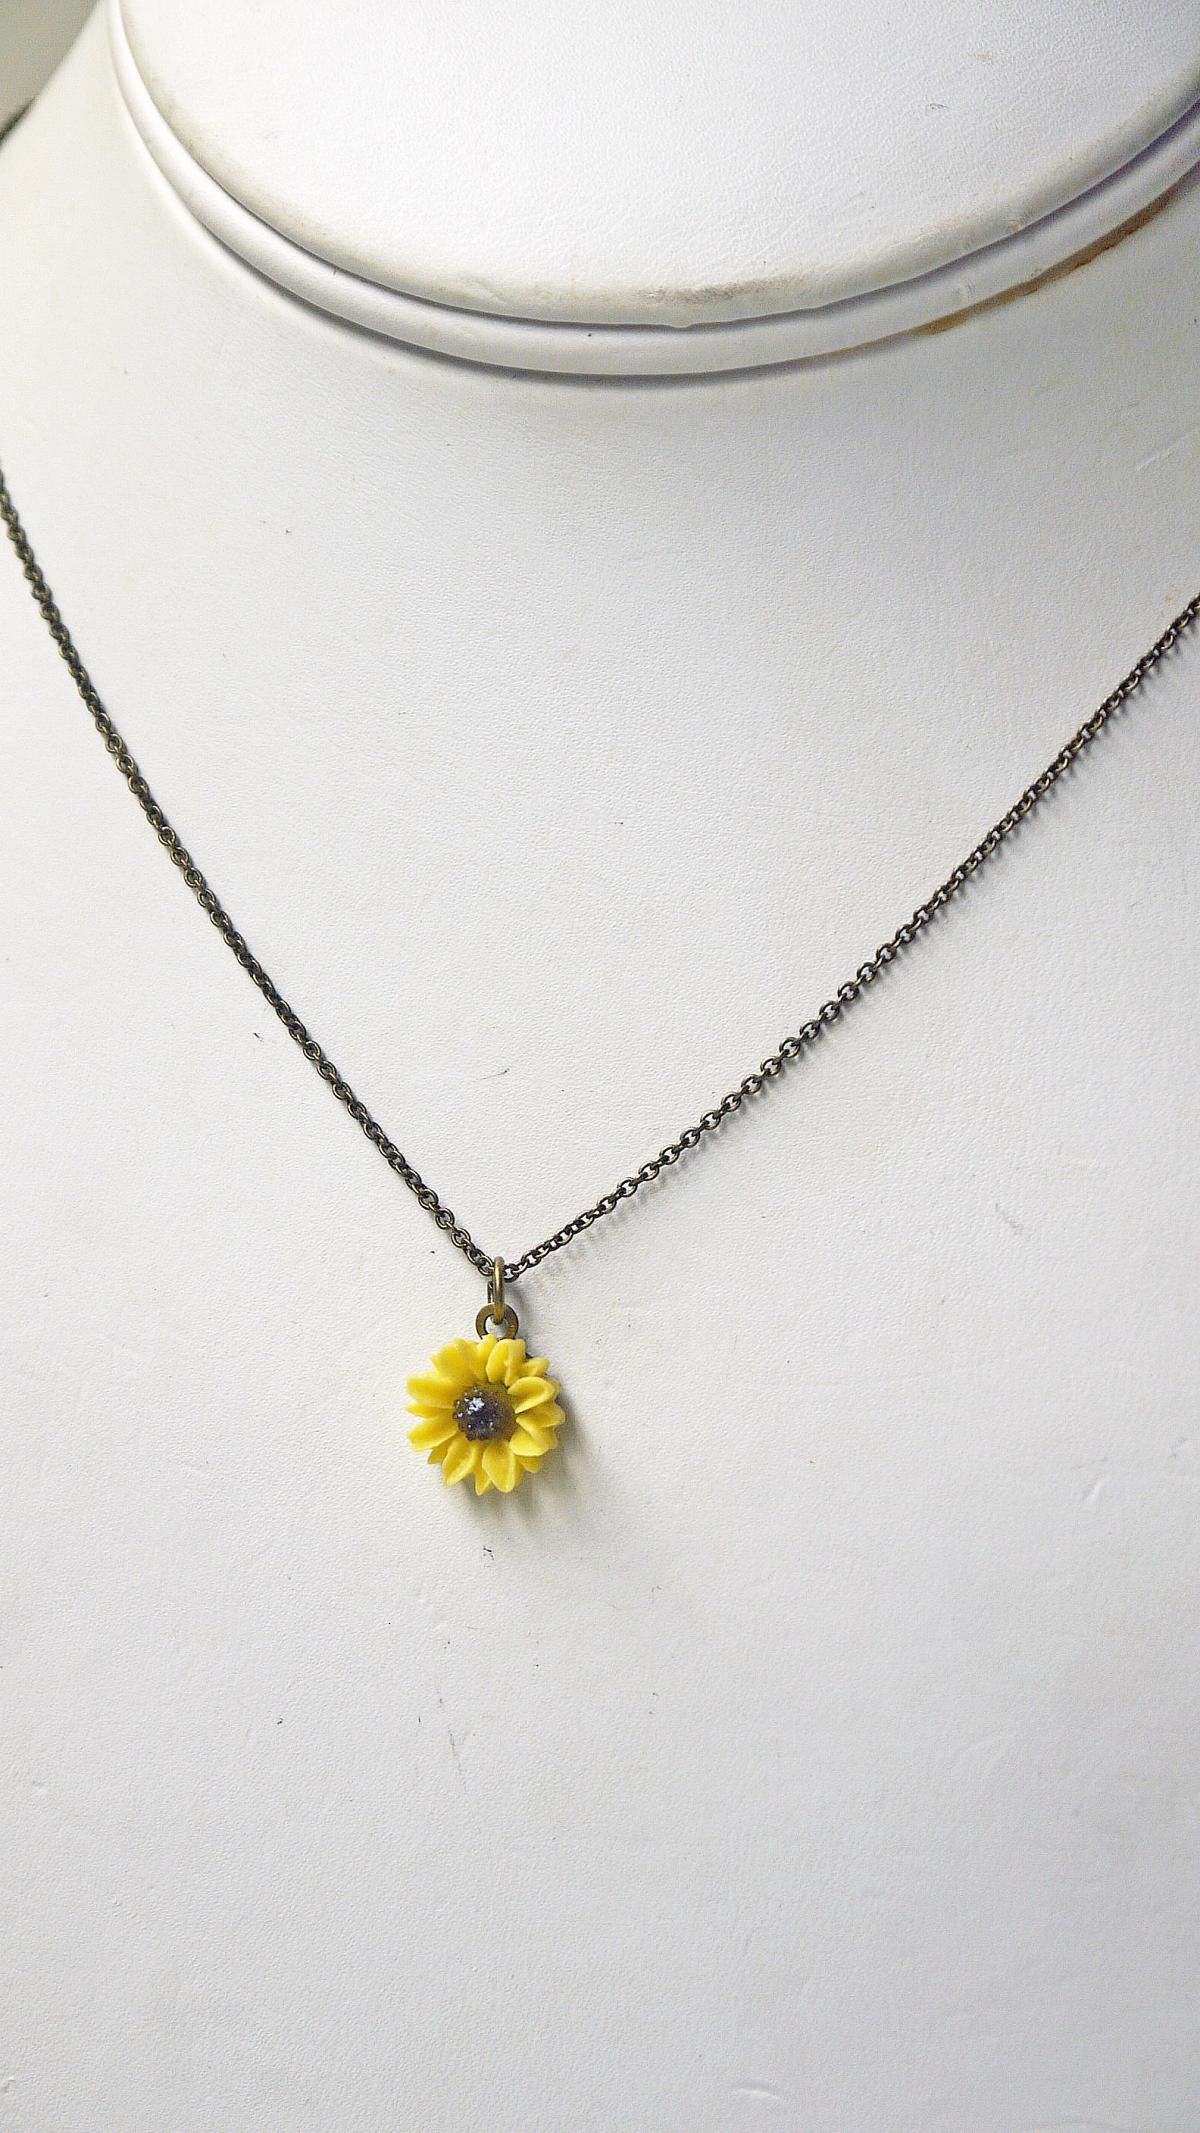 f843a864688 Sunflower Necklace. Antique Brass Yellow Sunflower Necklace. Dainty ...